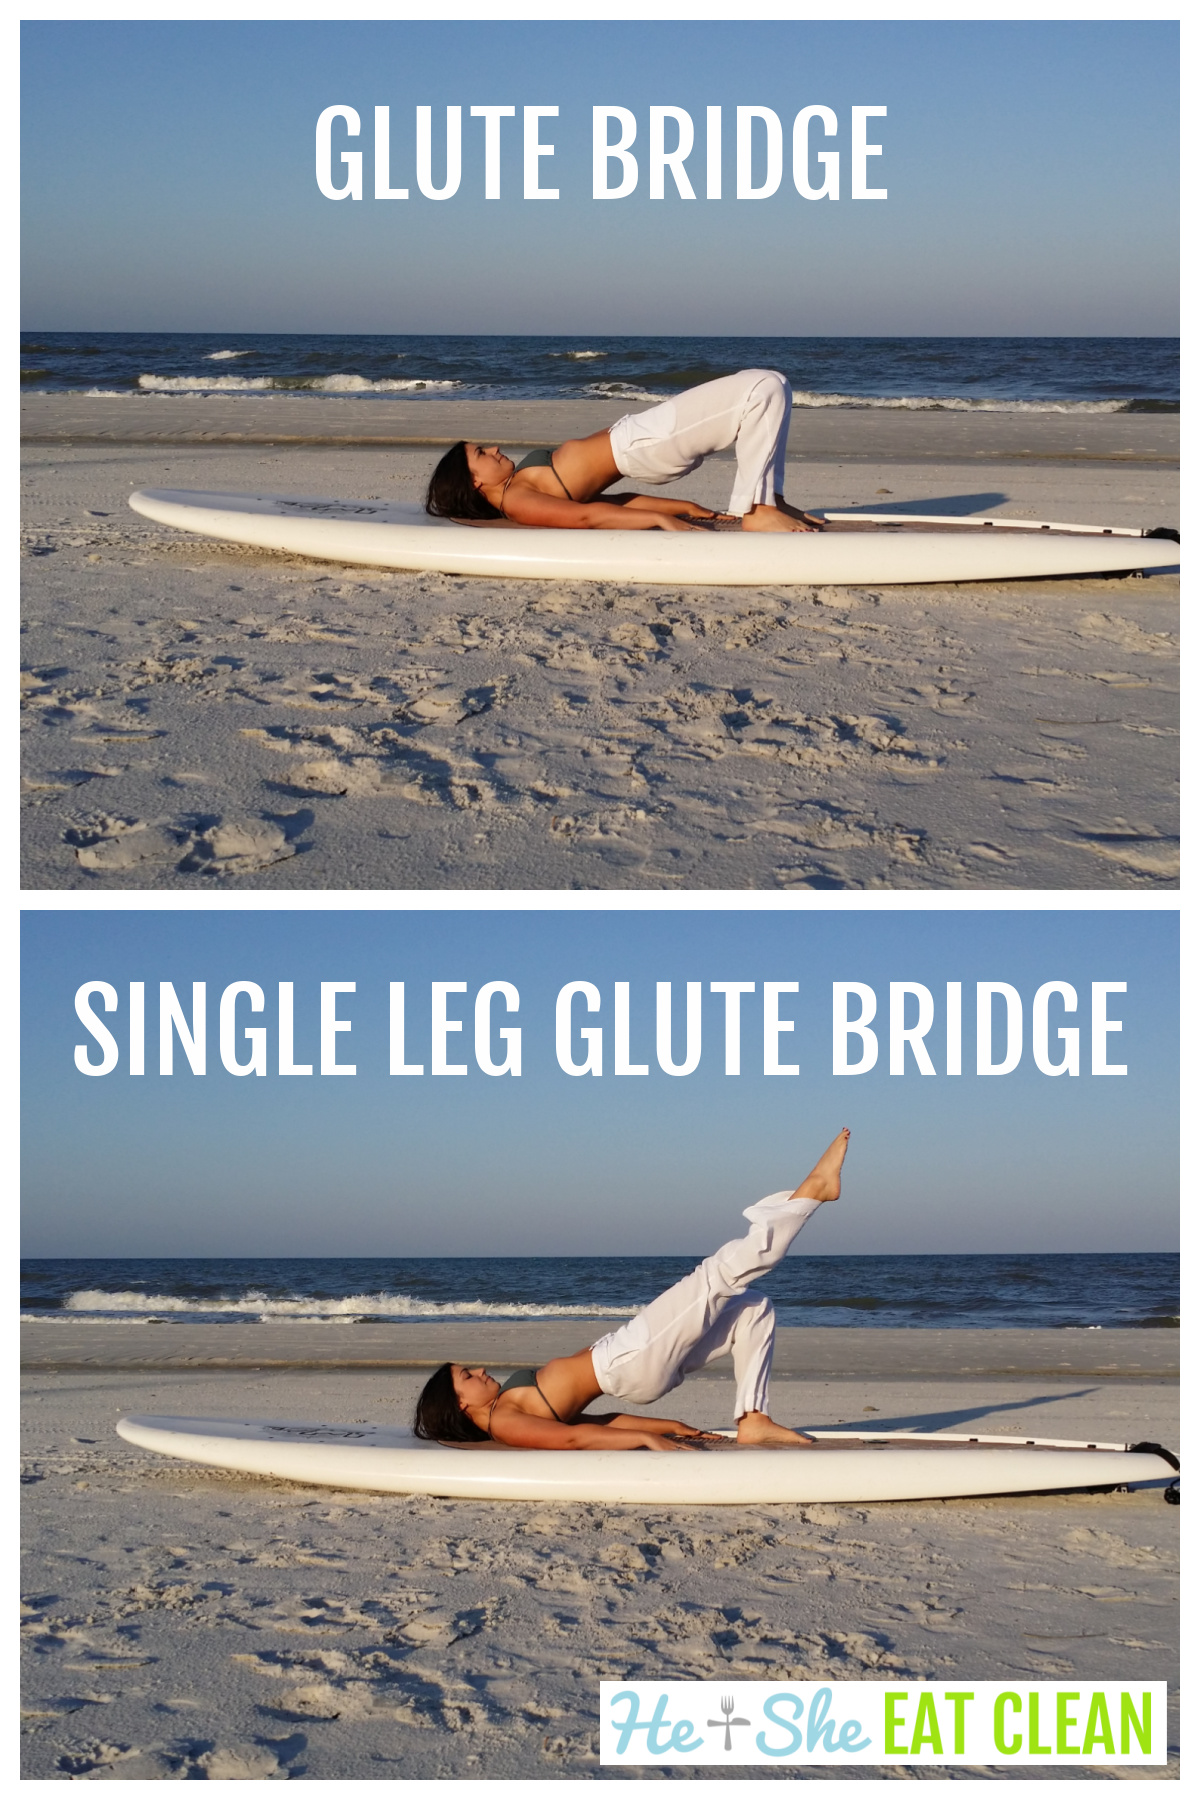 collage of 2 images of female on a paddleboard doing a glute bridge and single leg glute bridge